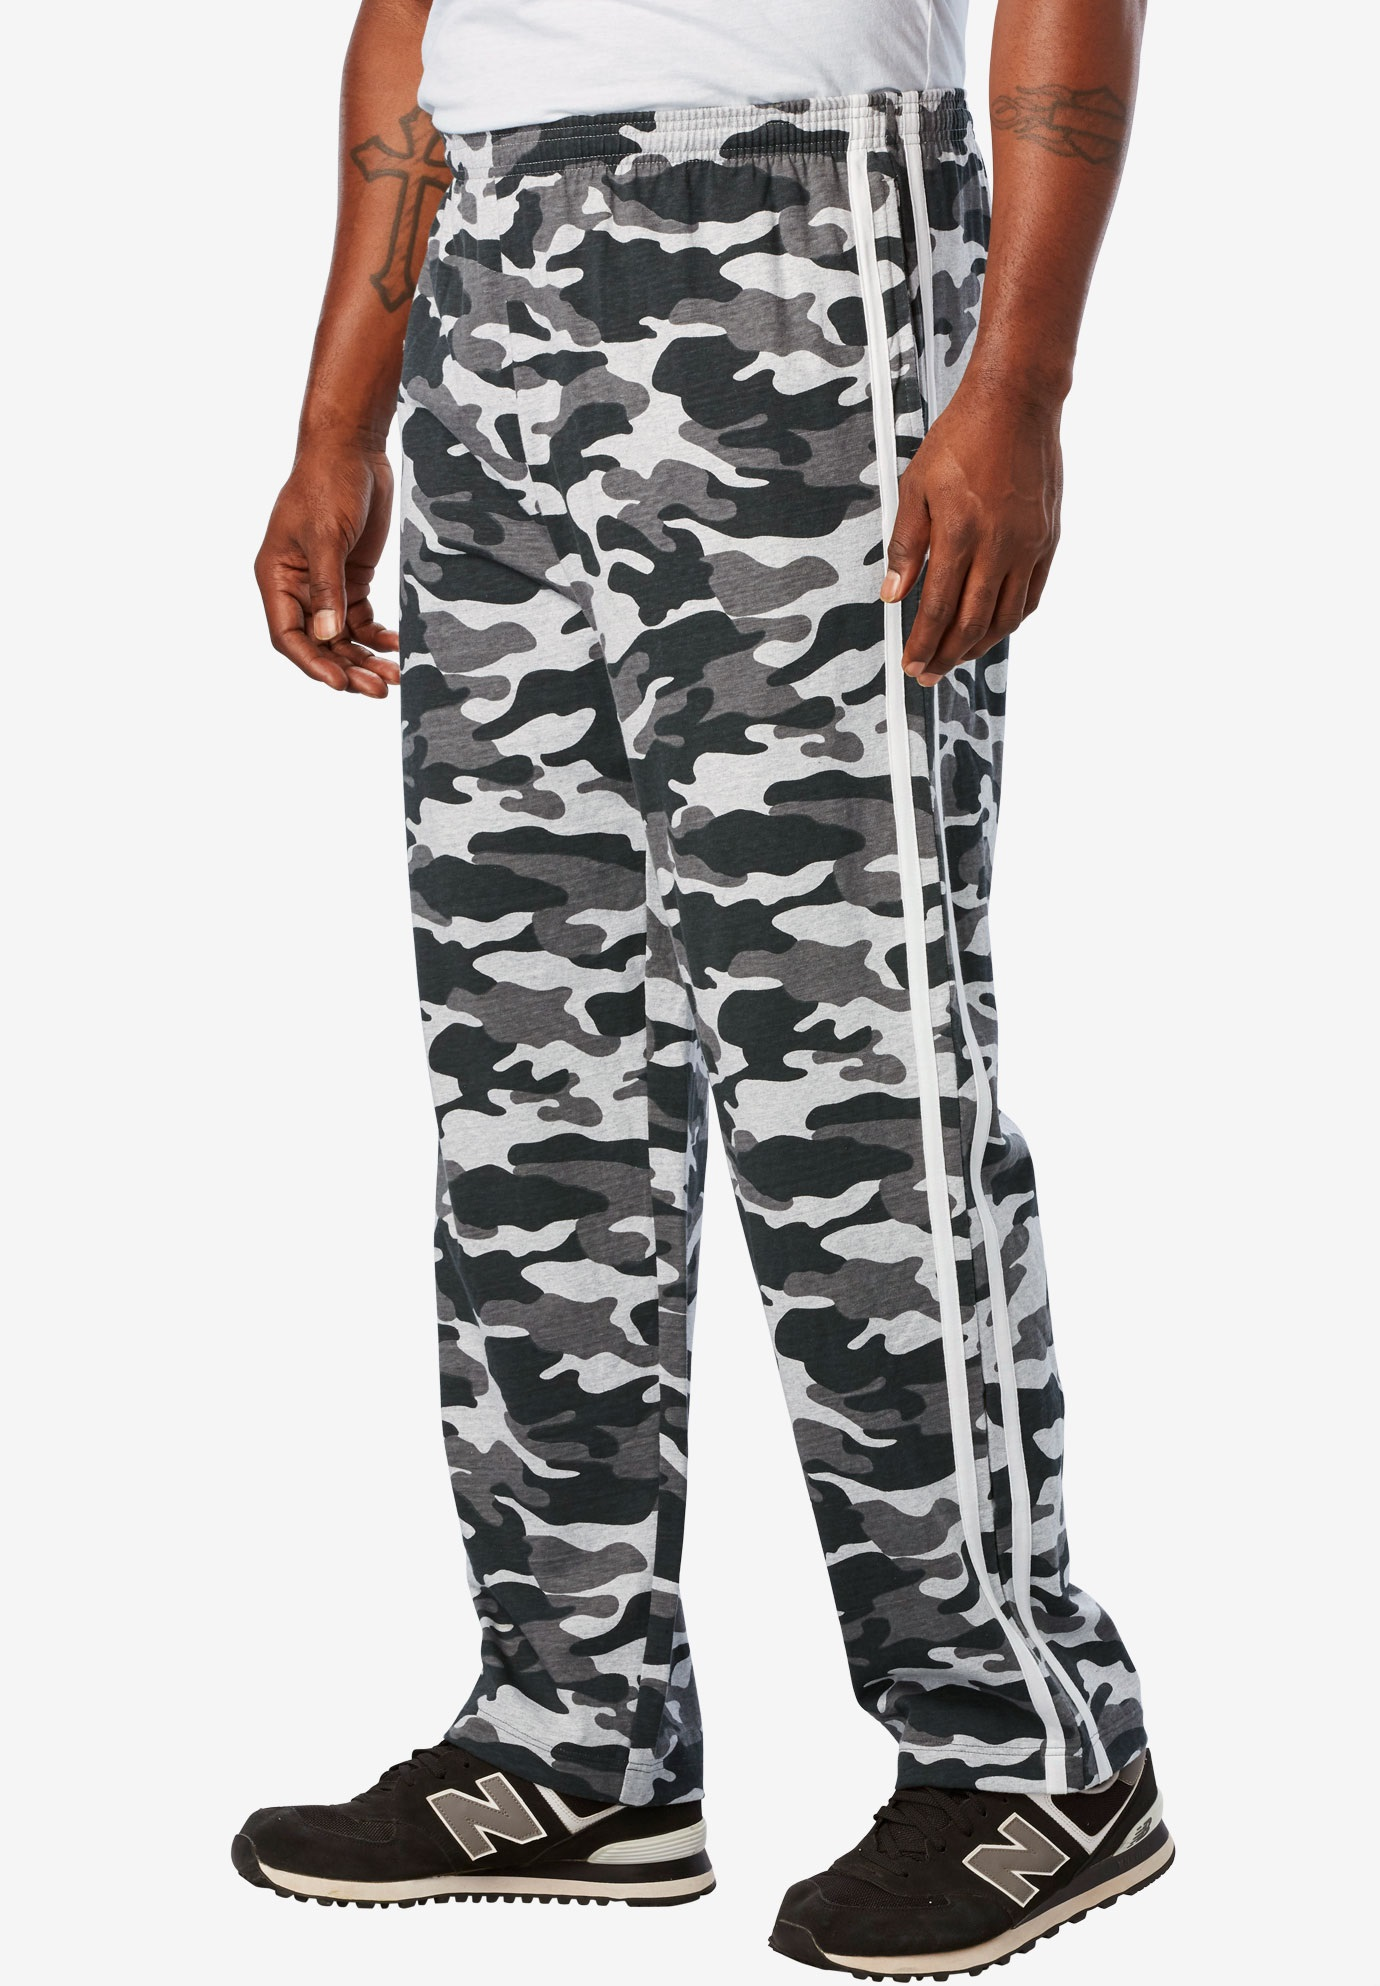 0c617ff73 Lightweight Sweat Pants with Side Stripes | Plus Size Active Pants ...